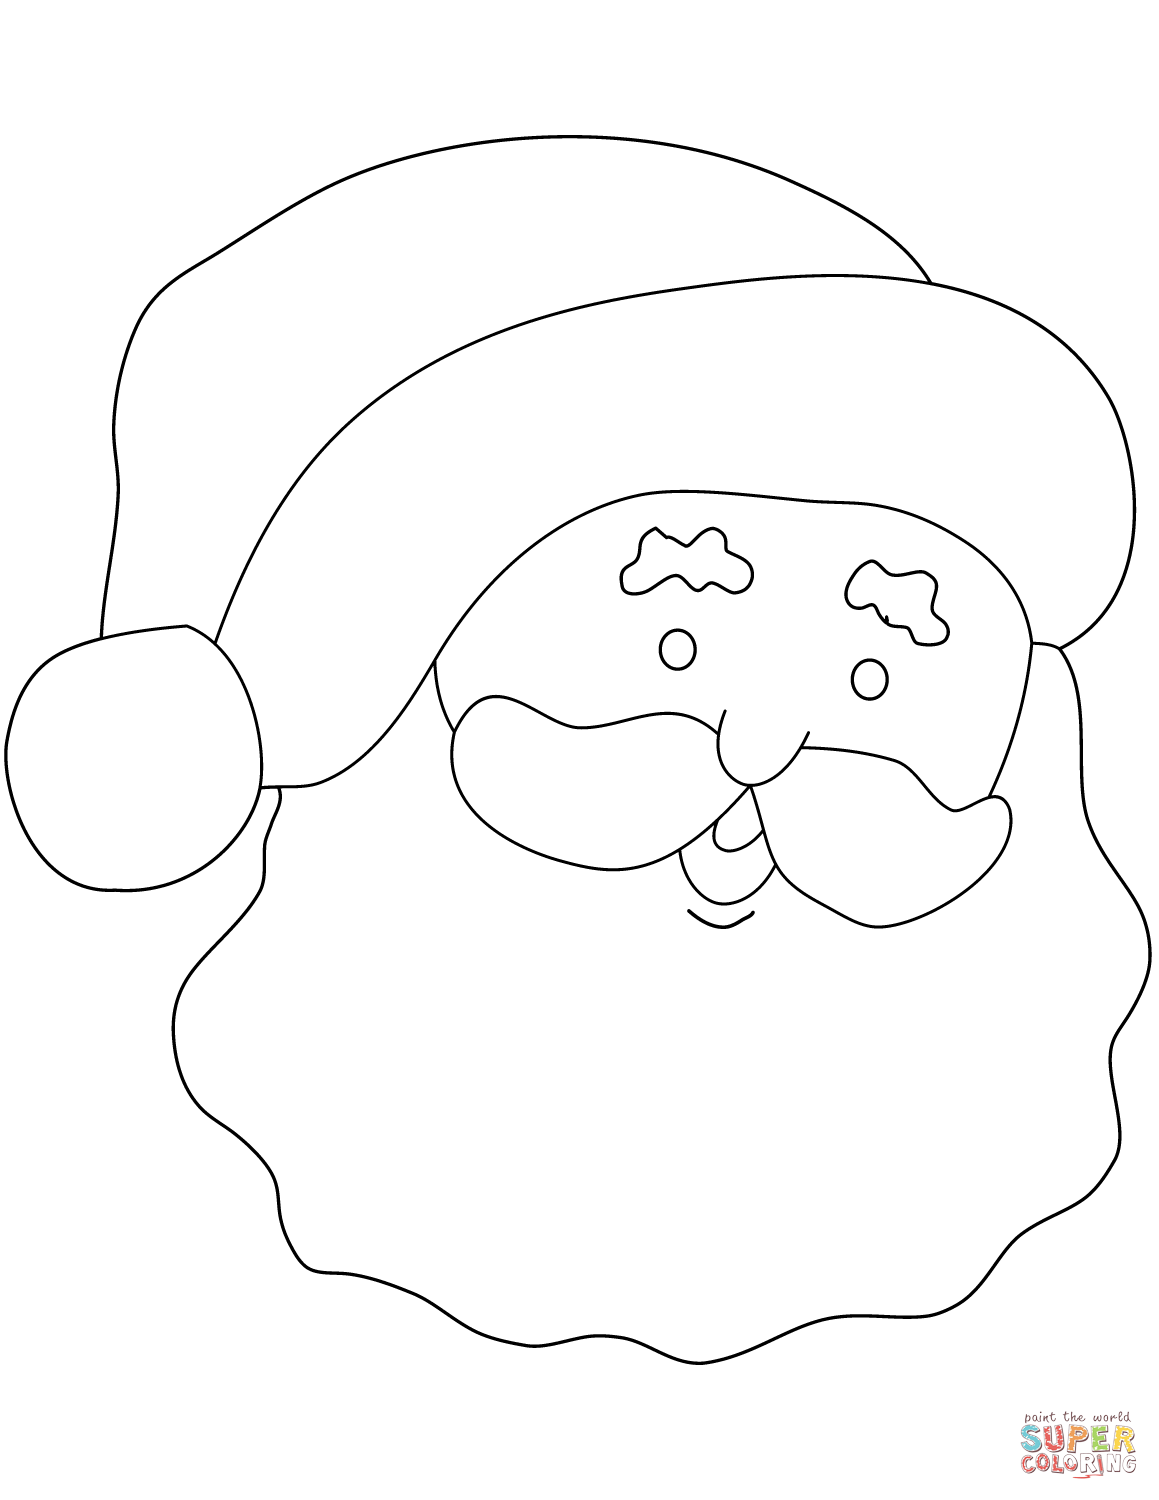 Santa Claus Simple Portrait Coloring Page